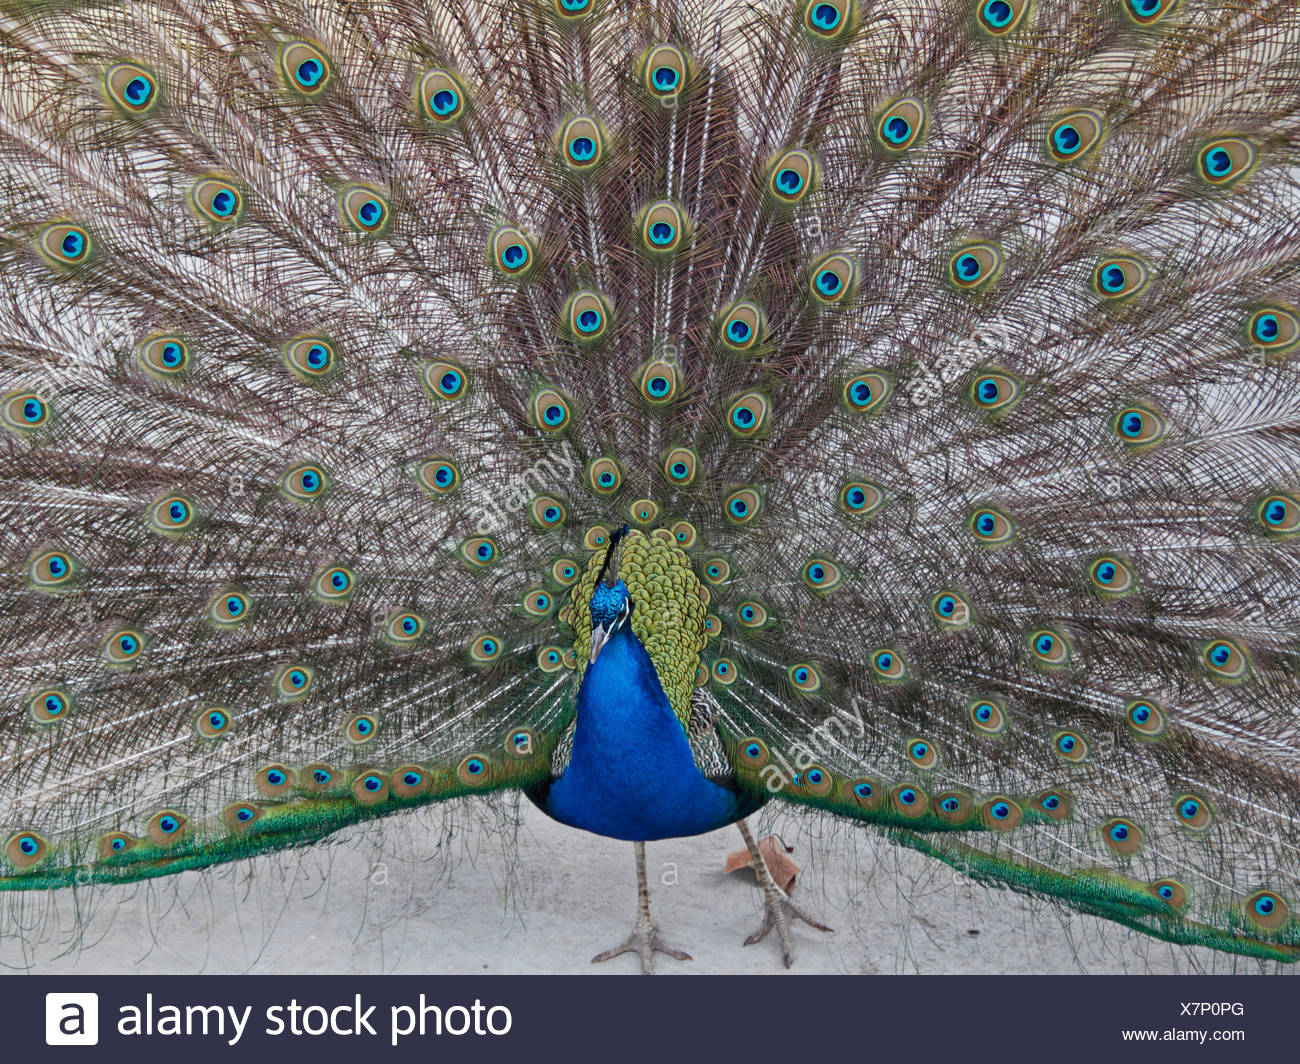 Peacock symbolism stock photos peacock symbolism stock images peacock stock image biocorpaavc Gallery